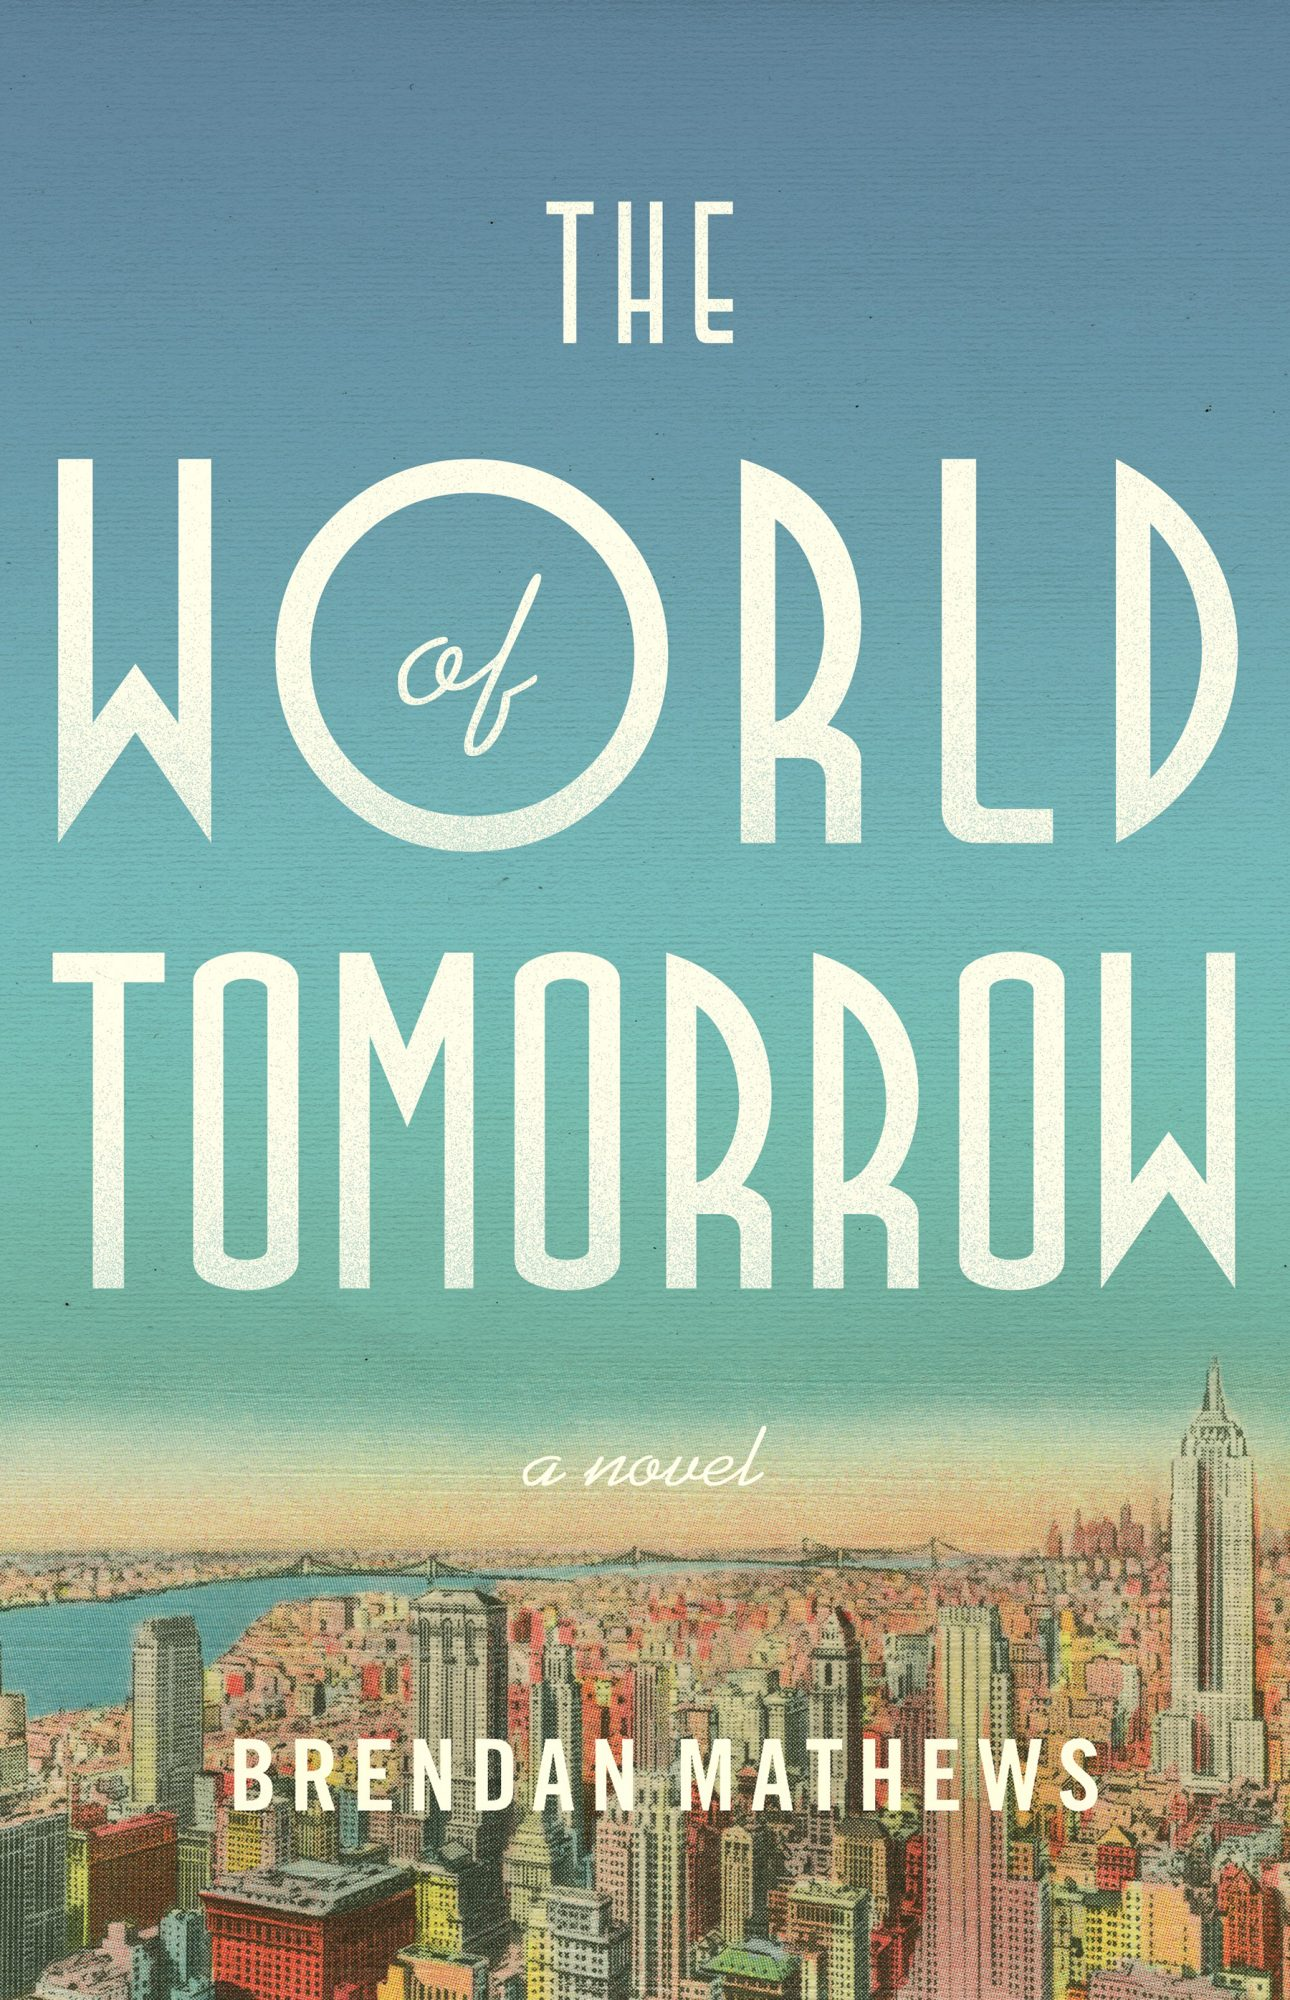 The World of Tomorrowby Brendan Mathews